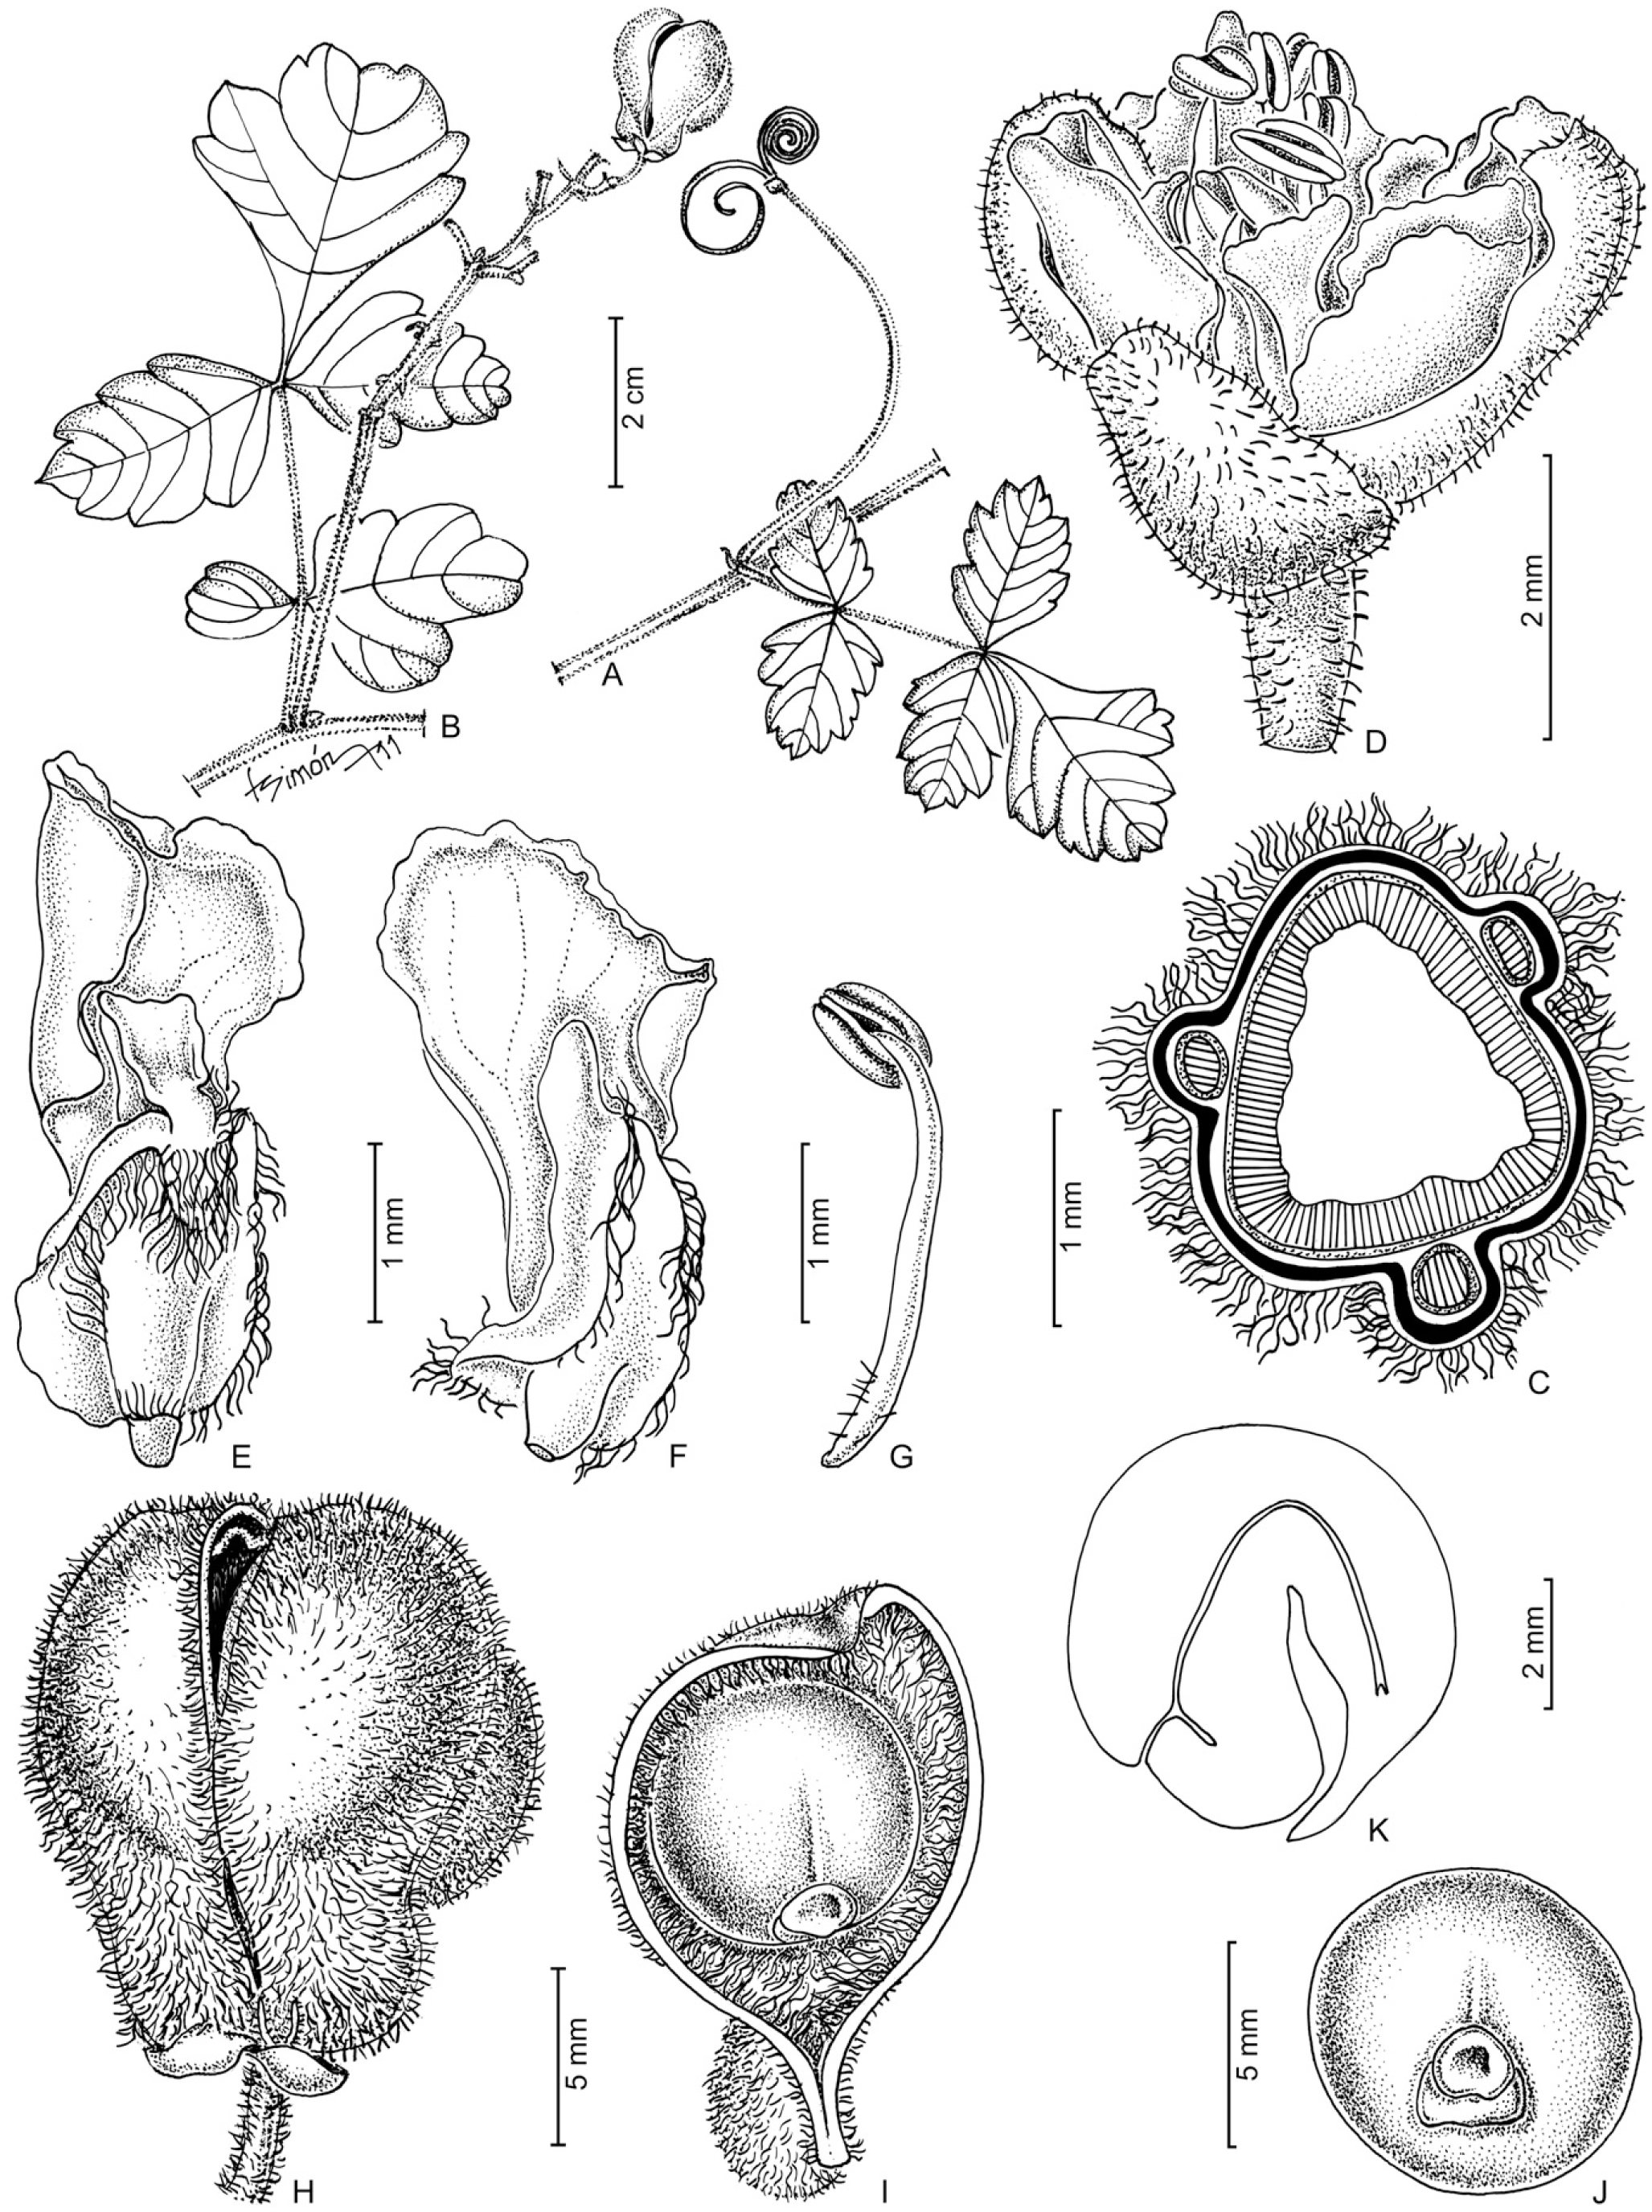 Two new species of serjania sapindaceae from michoacán